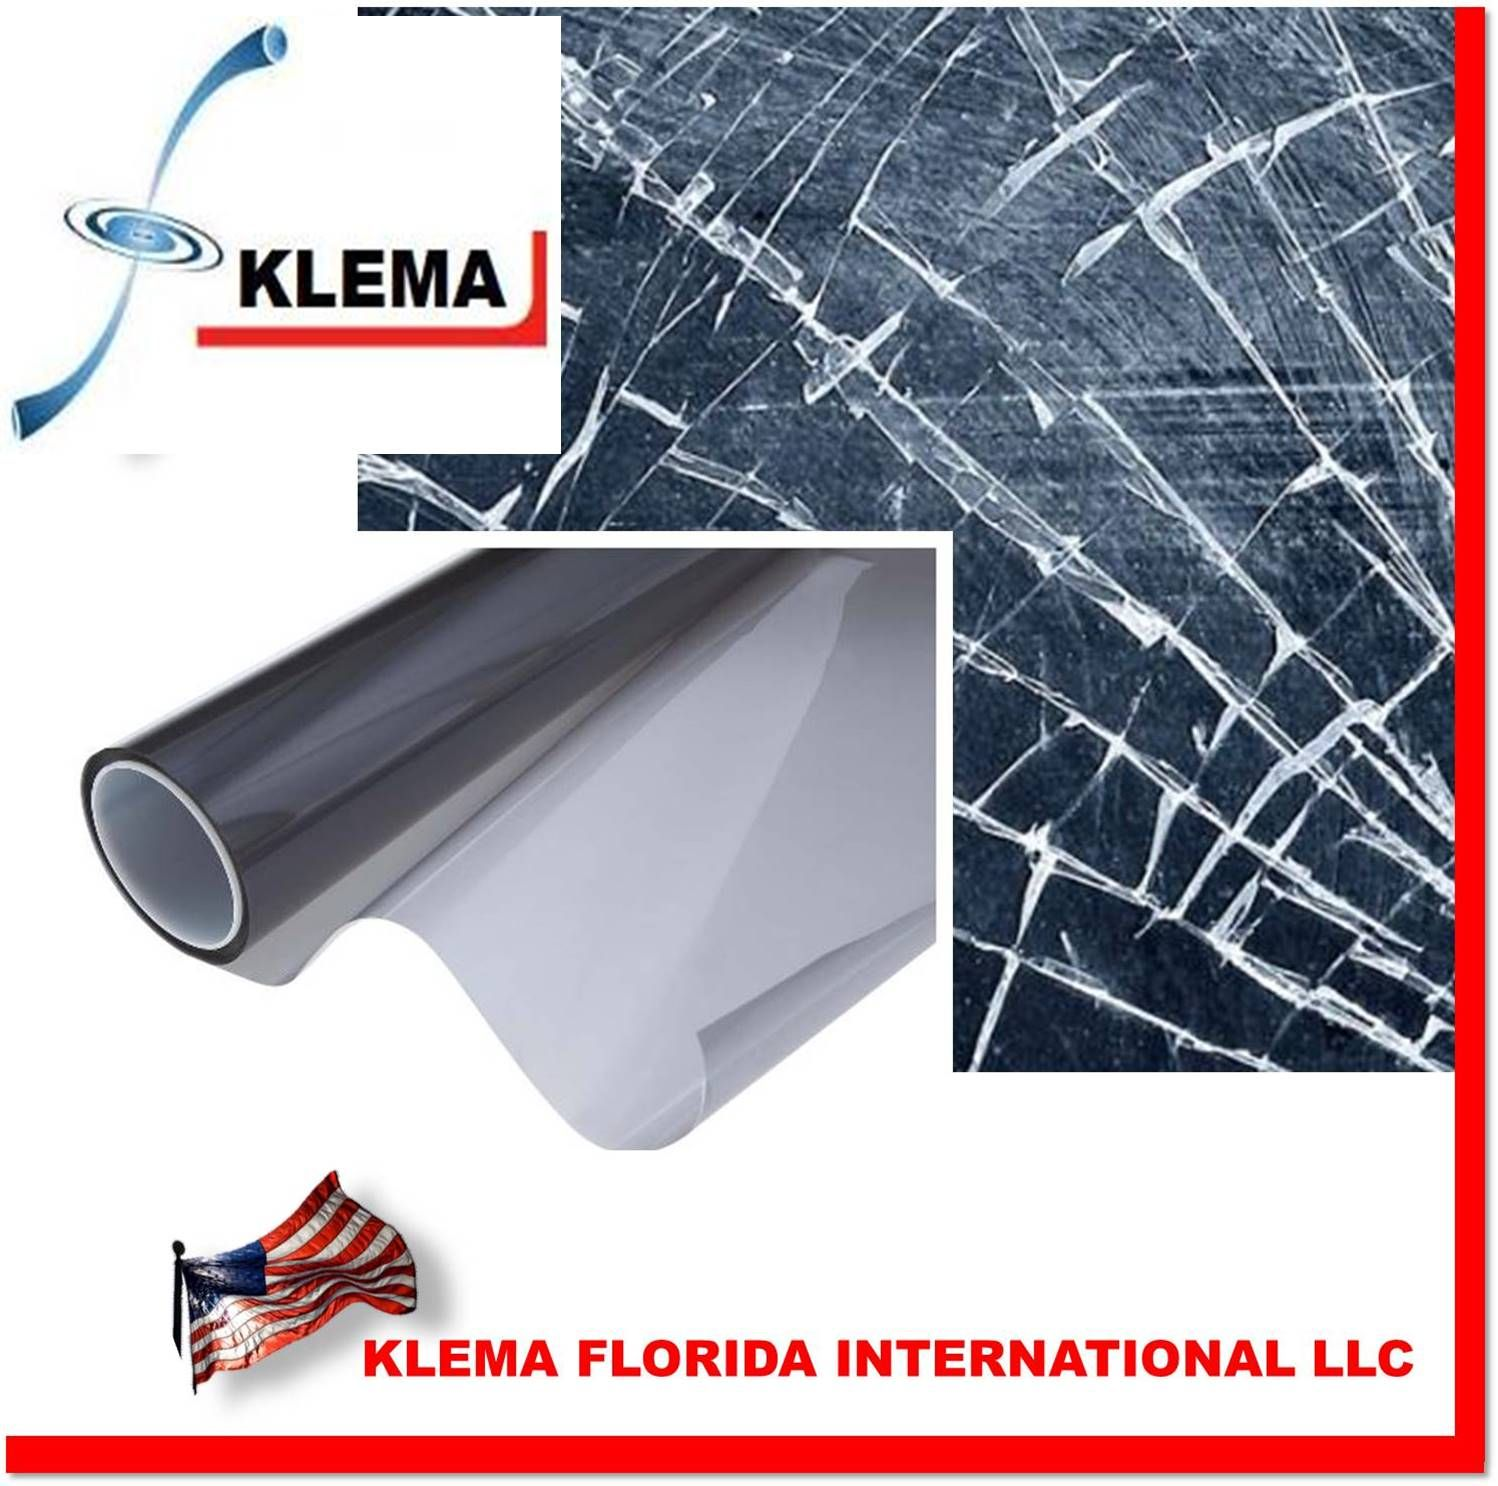 KLEMA SAFETY Security Window Film 37 years of Family experience to bring you the most reliable and effective line of security devices Our security films are designed to slow or prevent entry from a potential Break-In, also protects your values from UV, allowing them to stay like new for much longer time. Scratch-Resistant Coating Blocks 99% UV  WE ARE LOCATED IN MIAMI FLORIDA, THE BEST PRICES AND THE FASTEST SHIPMENTS More info at: http://www.klemallc.com/producto.php?idproducto=16